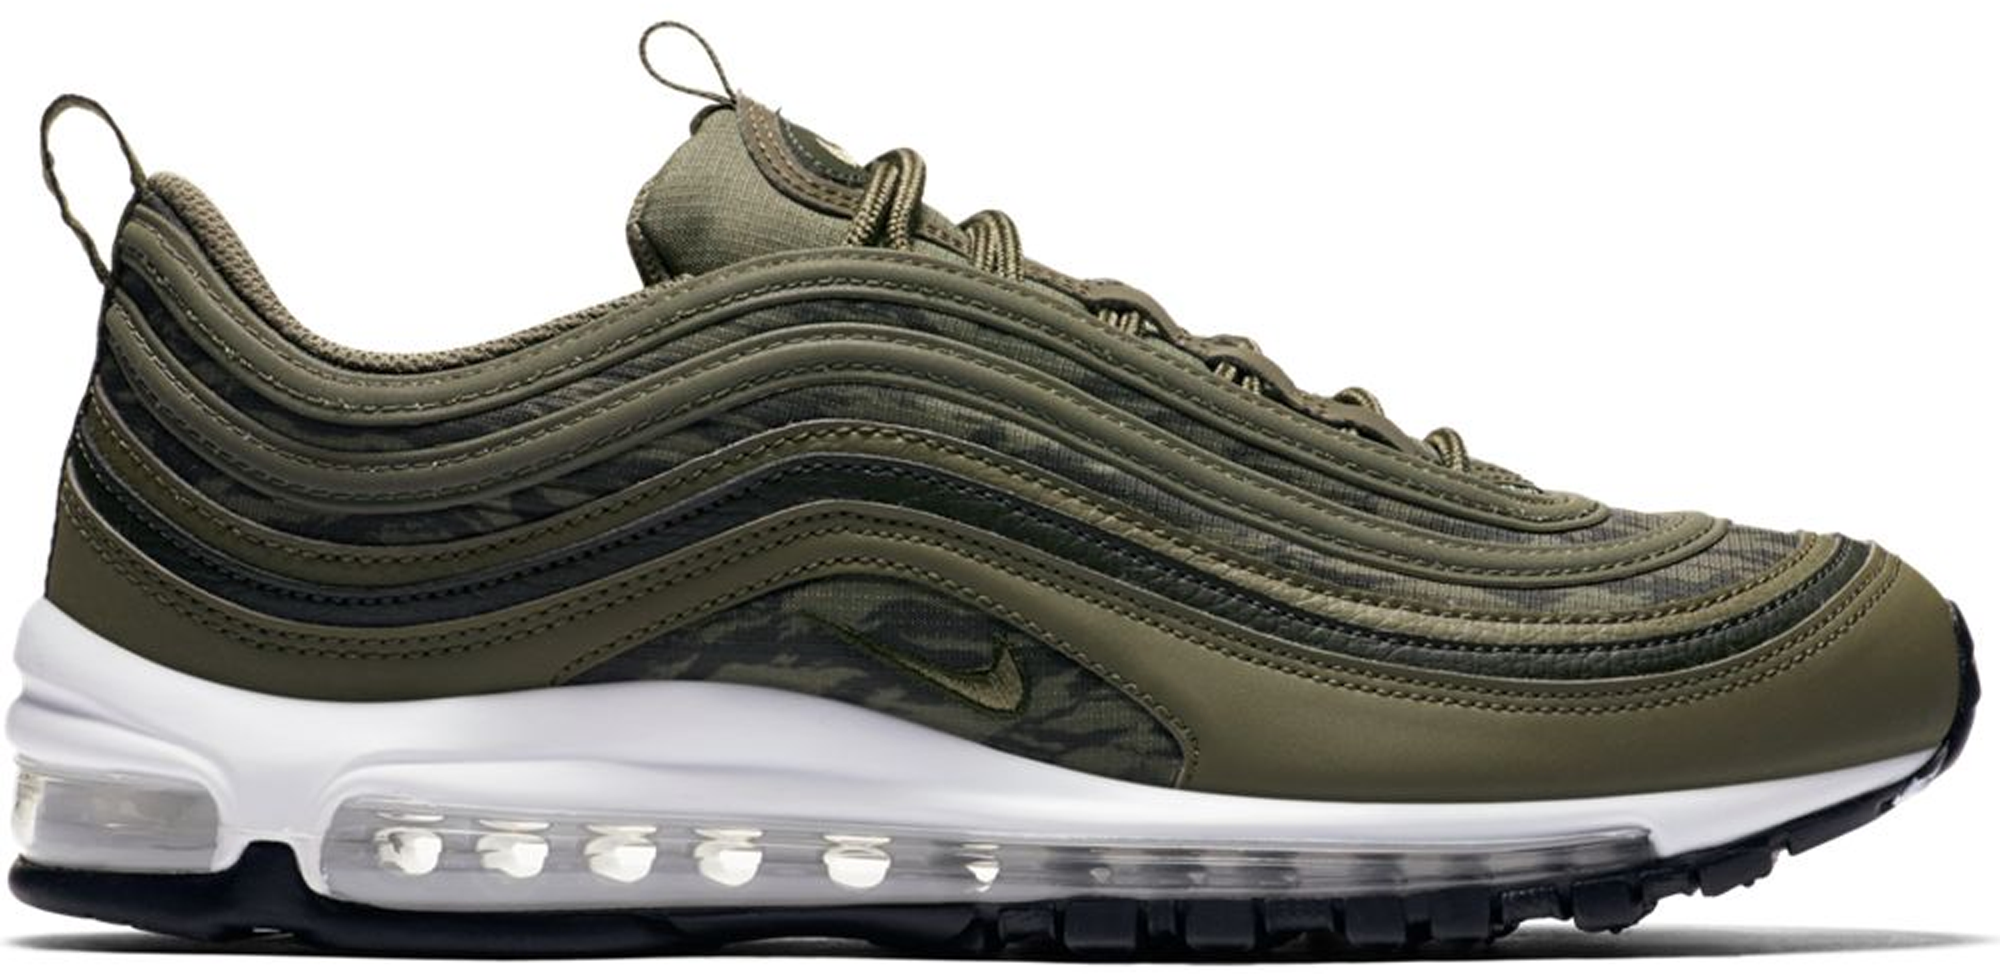 c7d6b471c61e90 ... discount code for air max 97 tiger camo olive 926e2 0ea0a